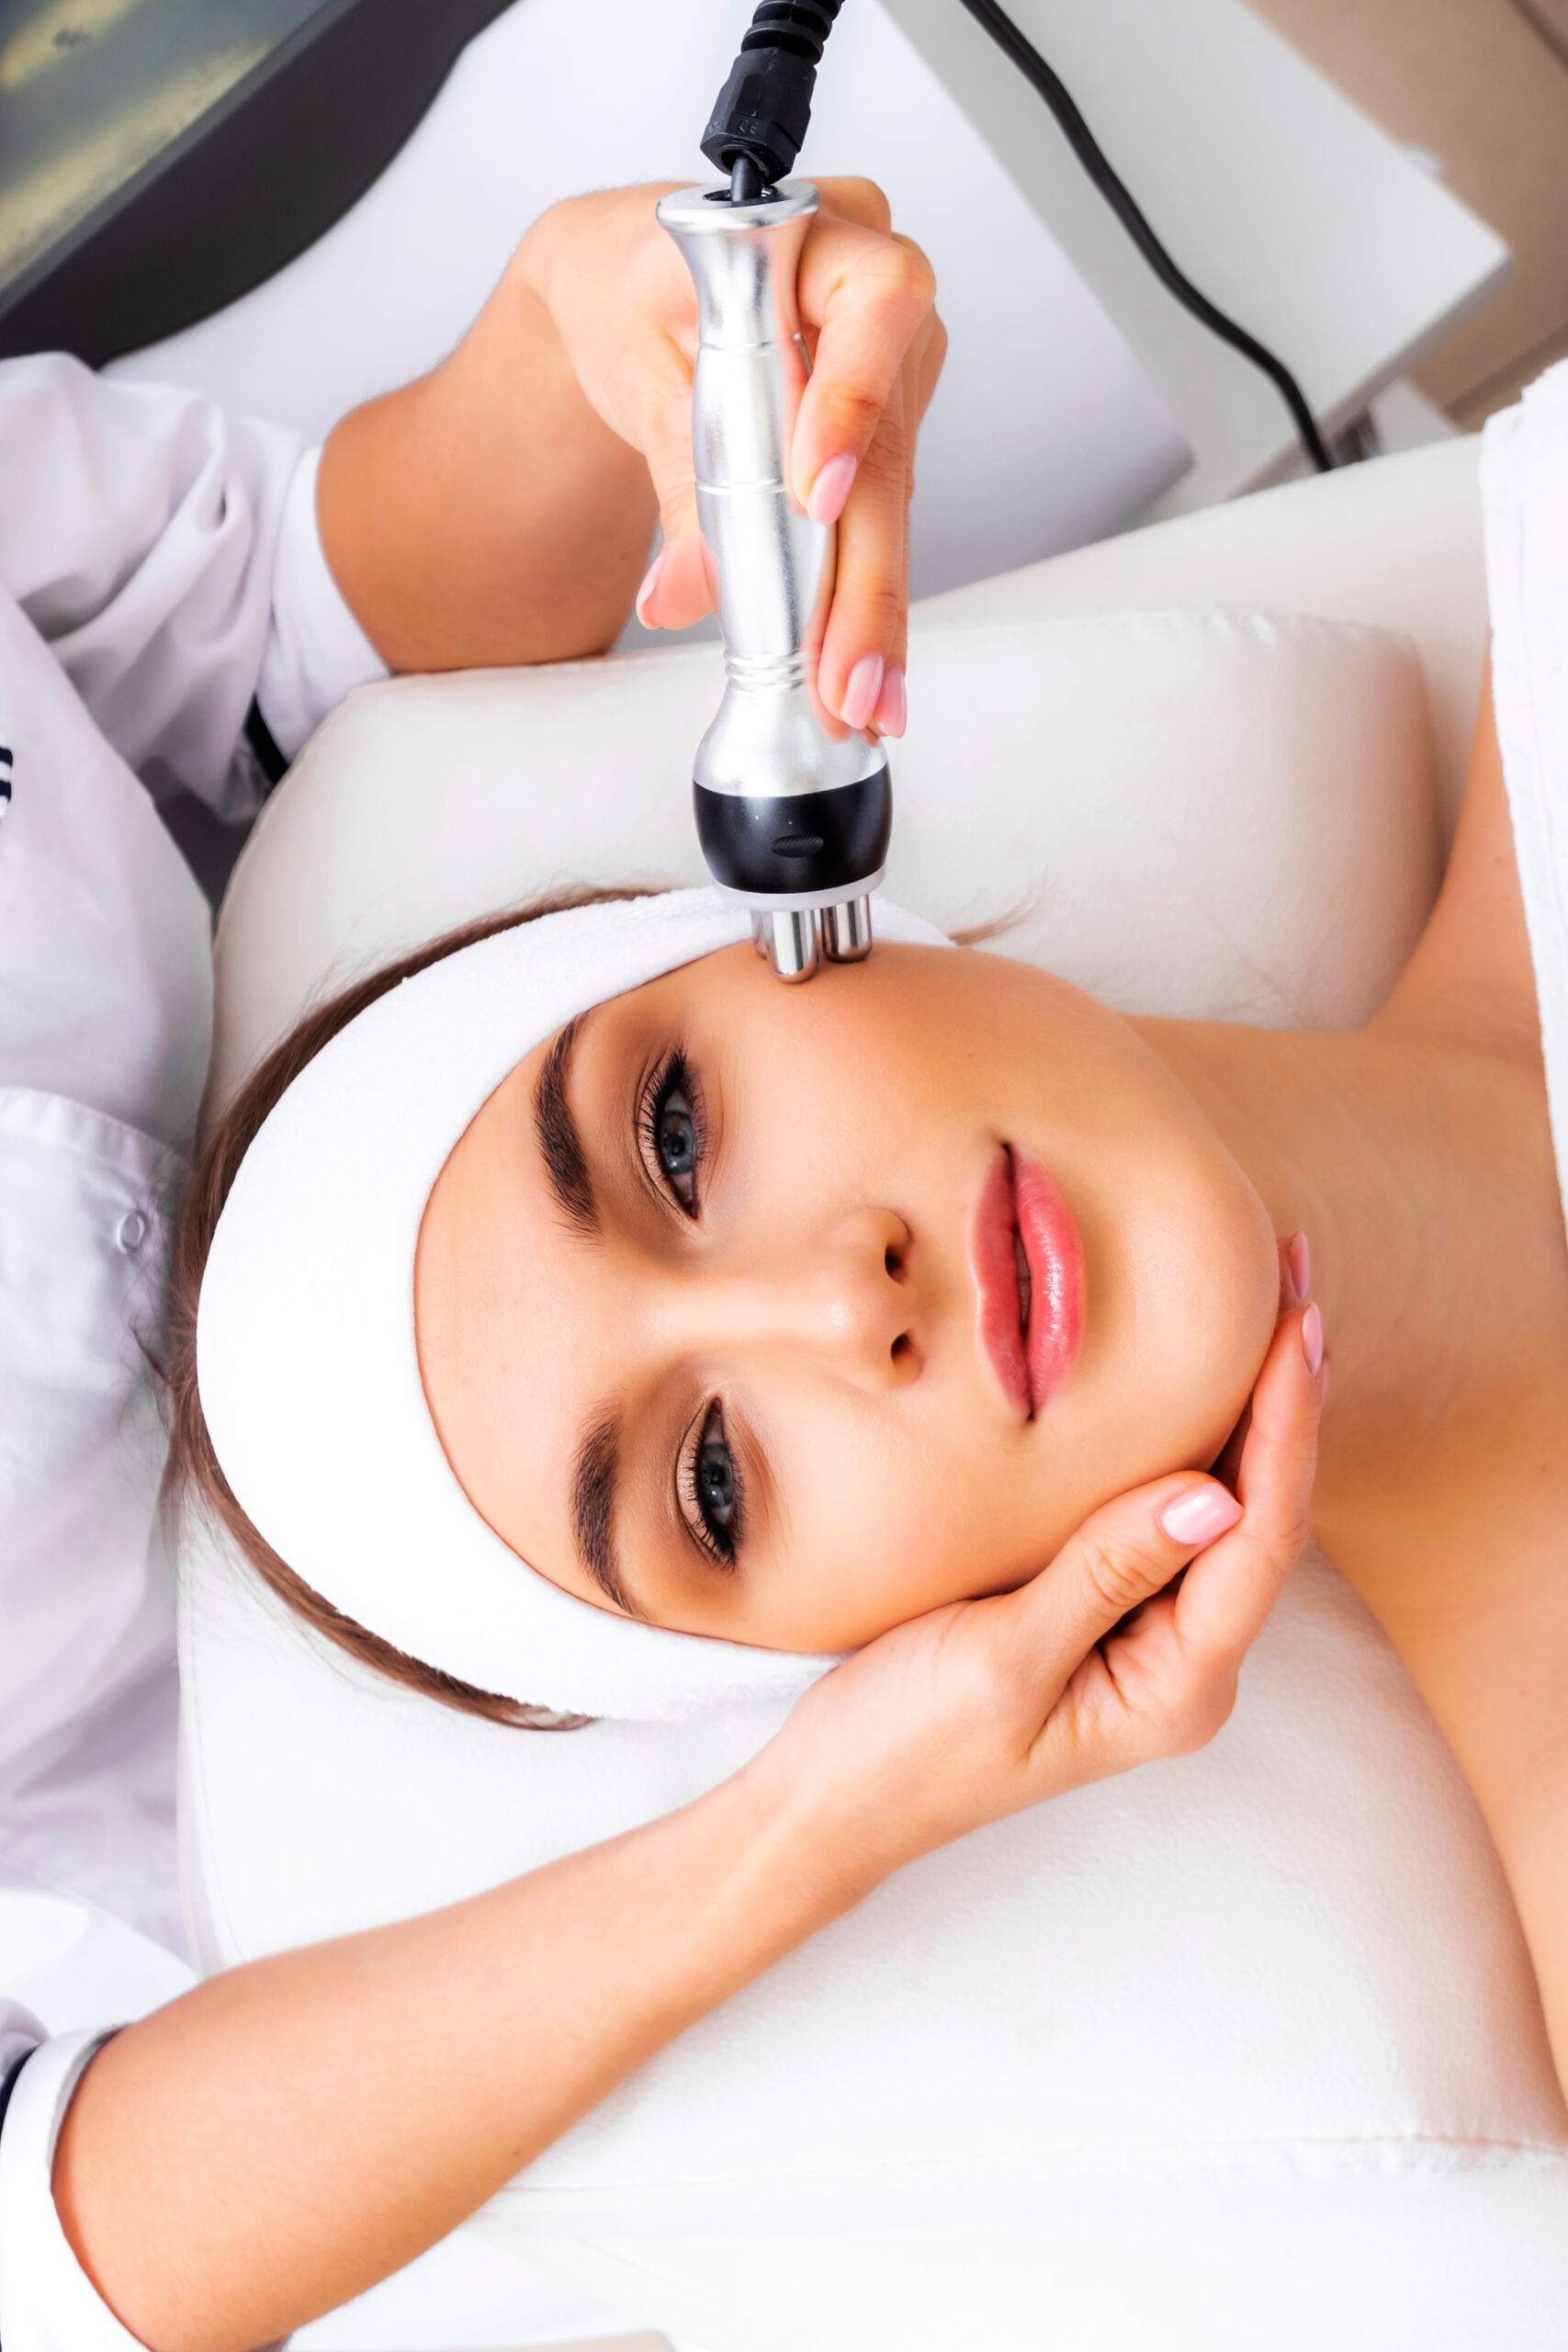 Radio,Wave,Face,Lifting,In,A,Cosmetology,Clinic,Photo.,Skin